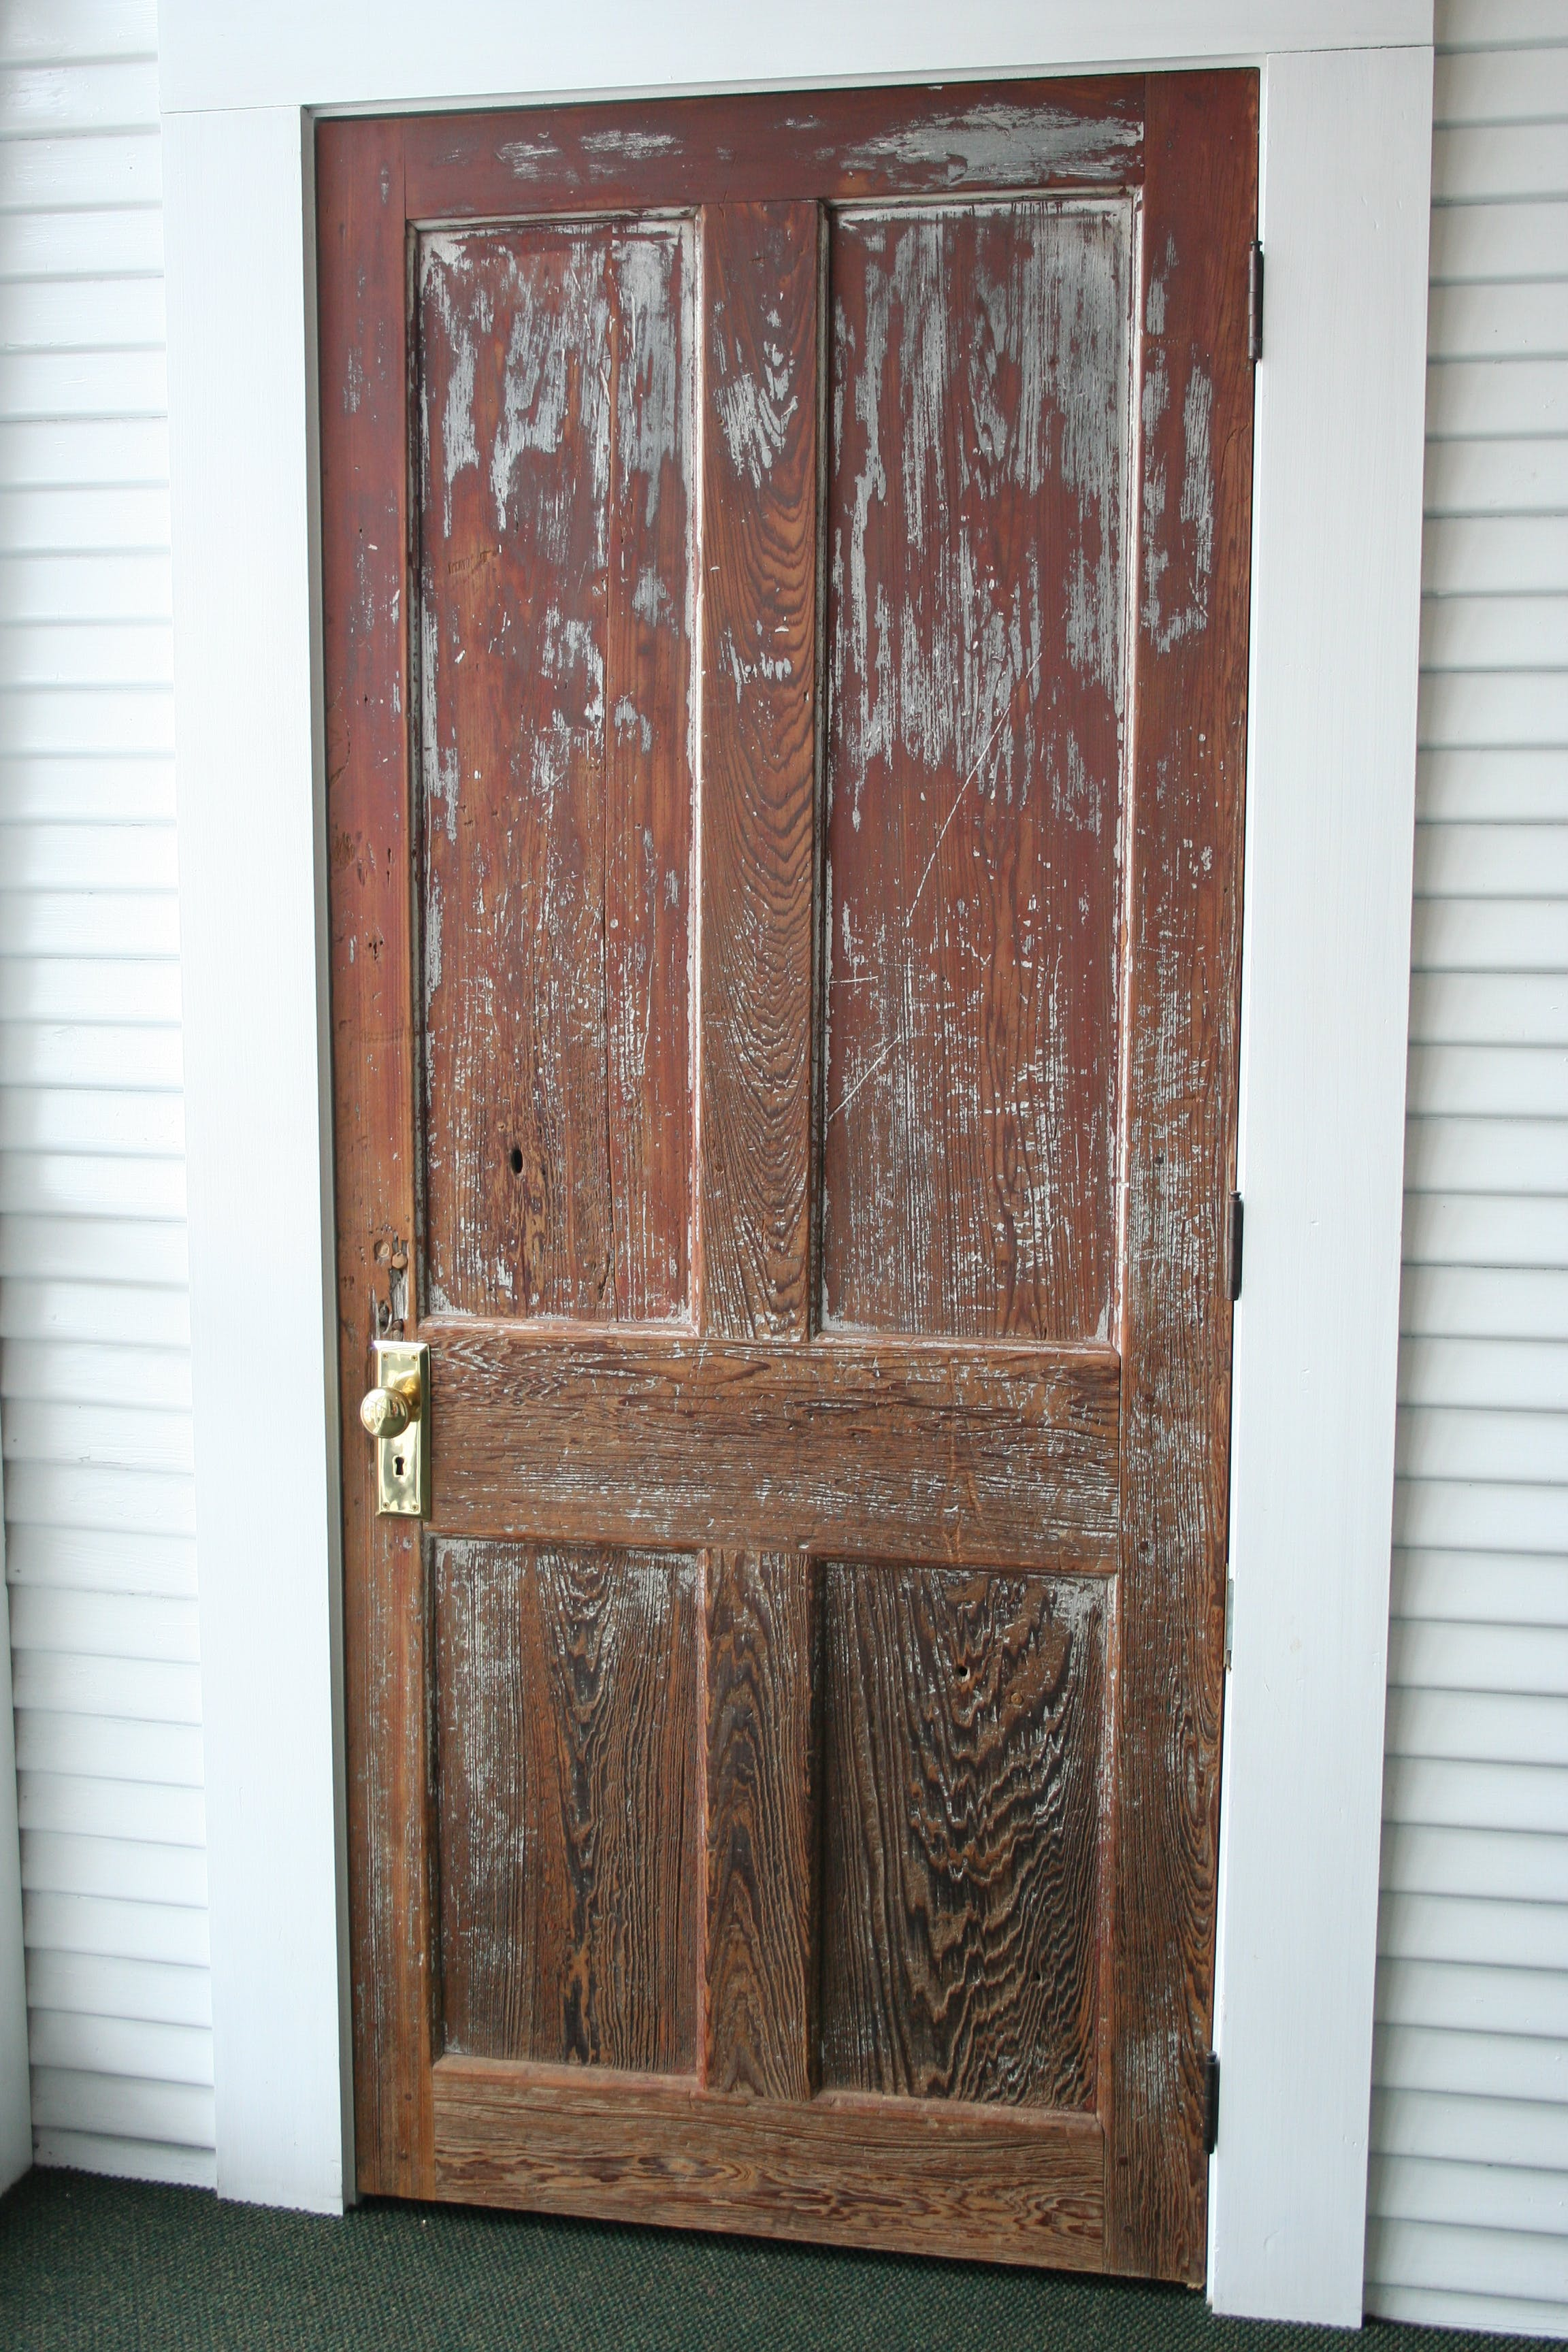 Free stock photo of old door, wooden door